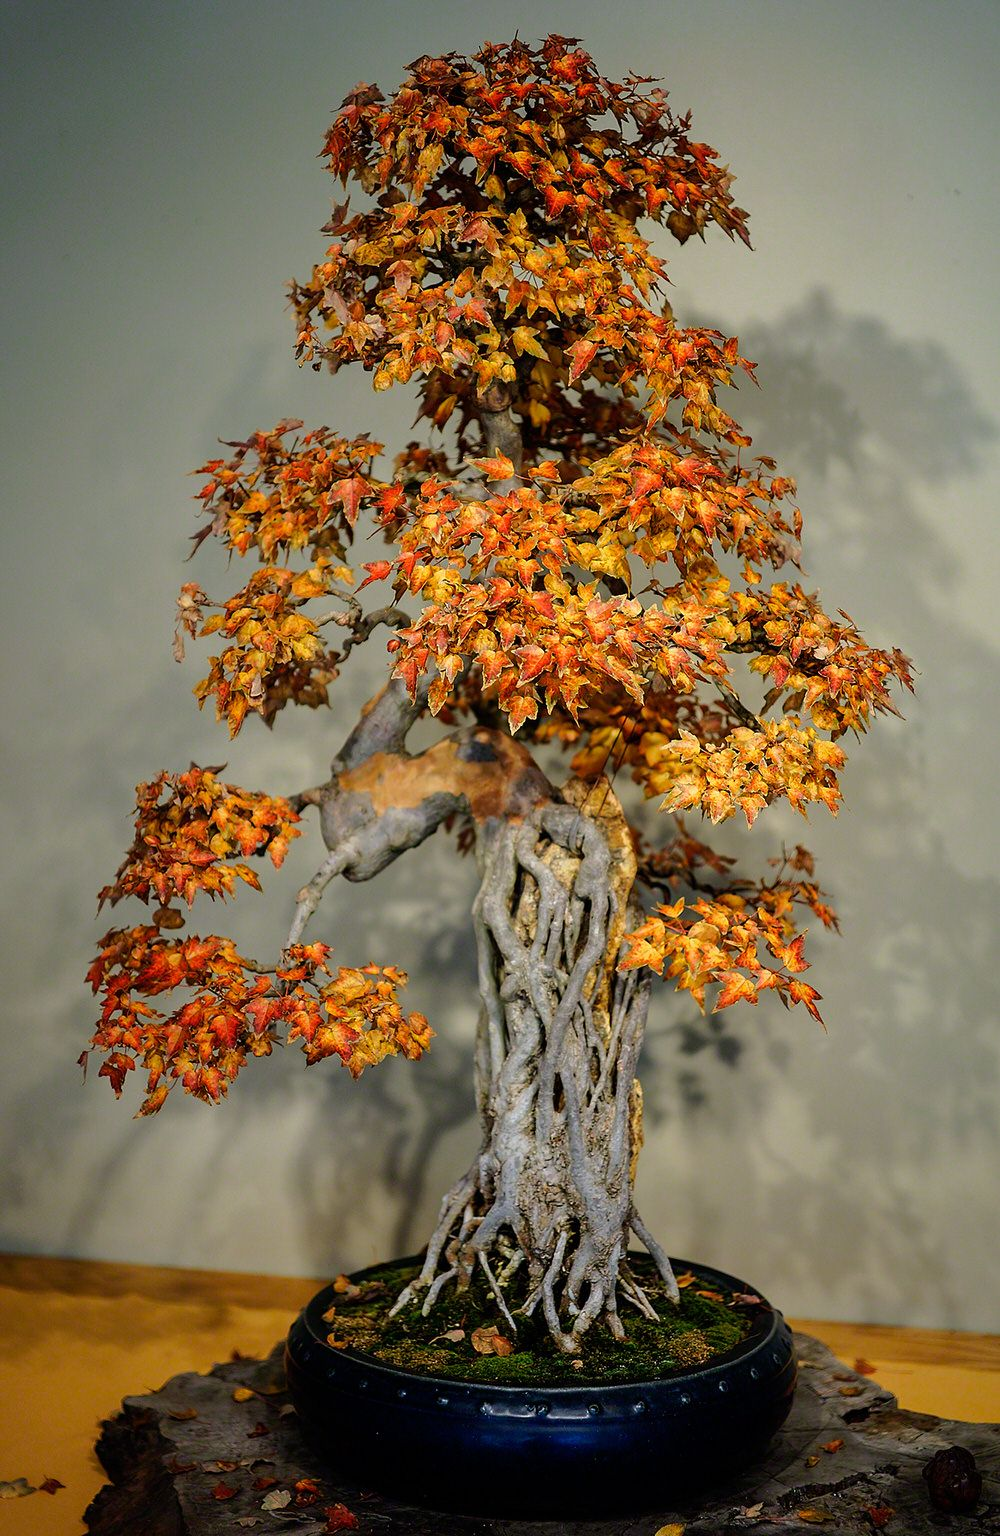 24 Bonsai Trees That Will Change Everything You Thought